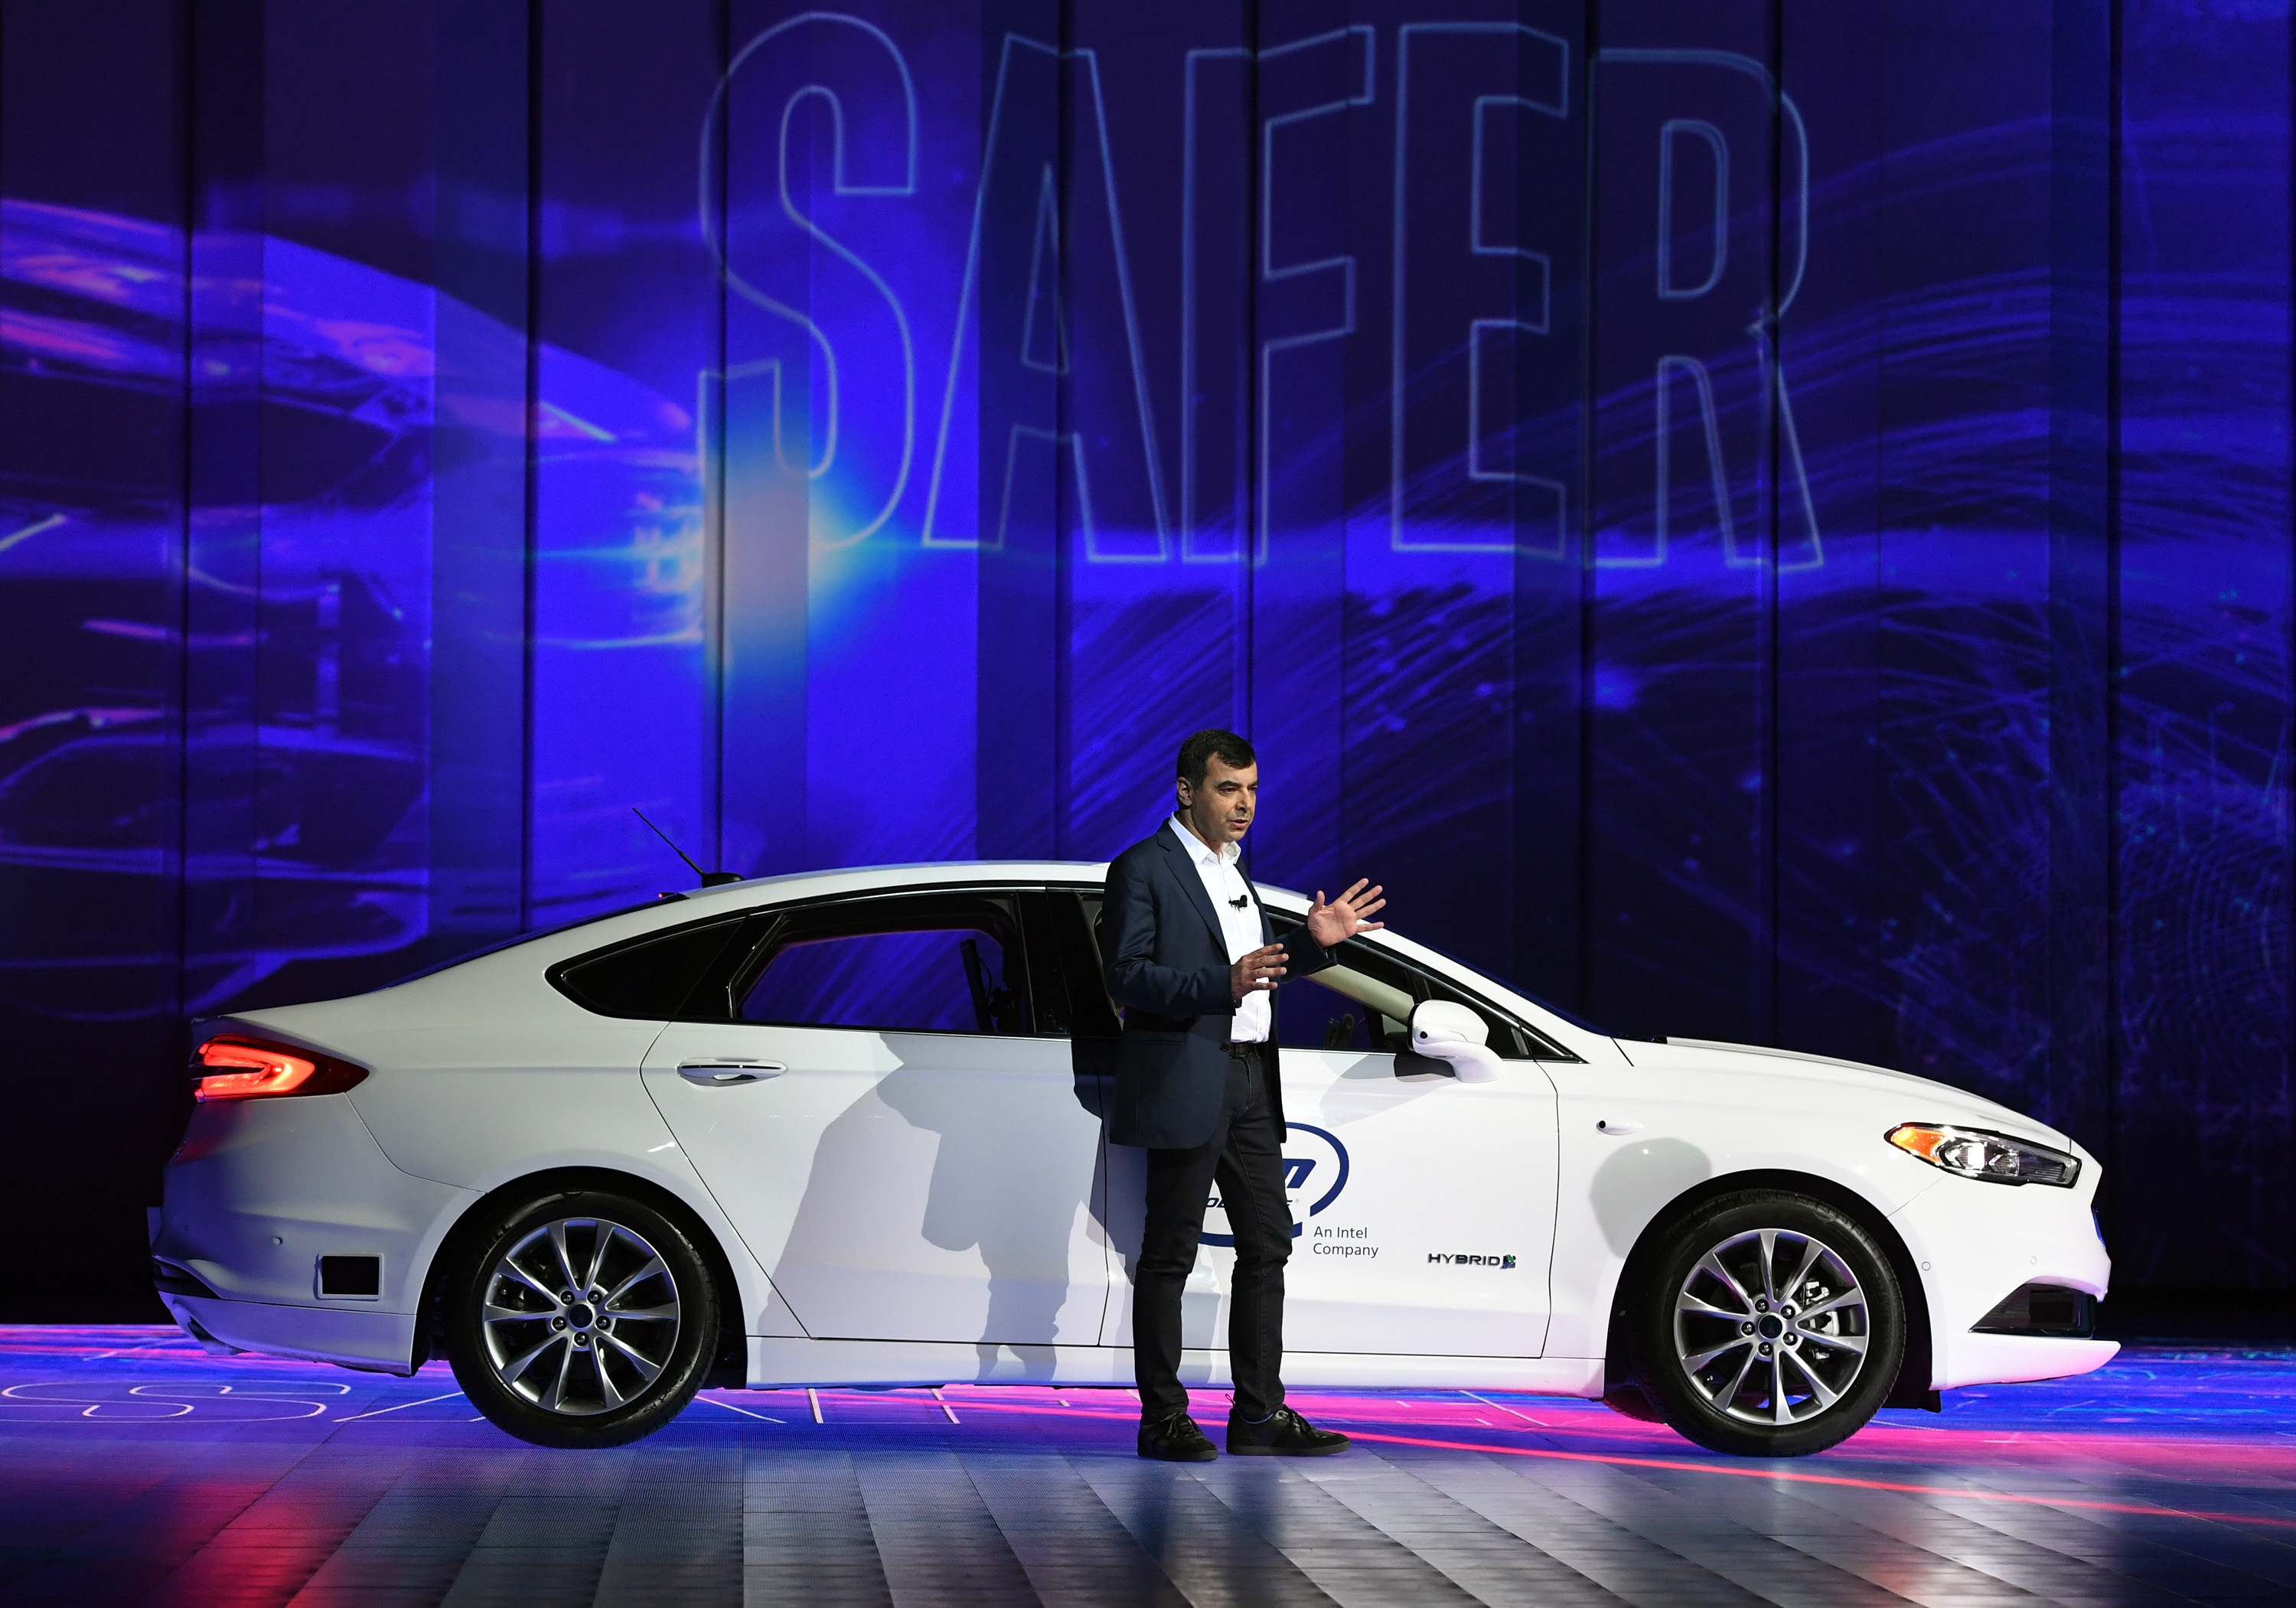 The three challenges keeping cars from being fully autonomous